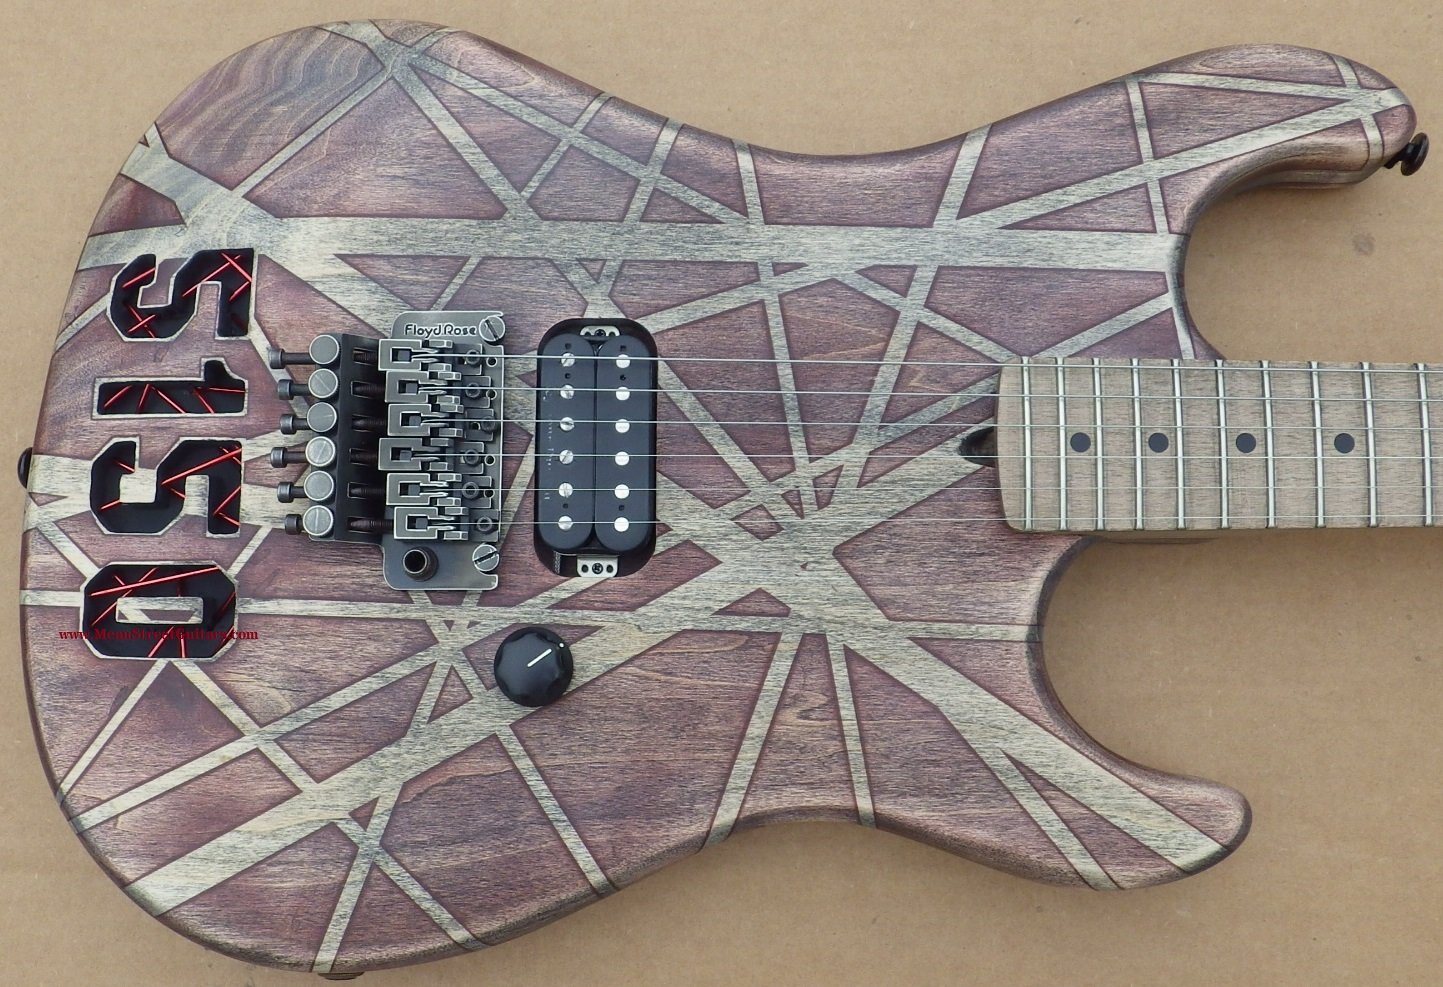 Mean Street Guitars Industrial 50 1 50 Pipeline 01 maroon pic 2.jpg